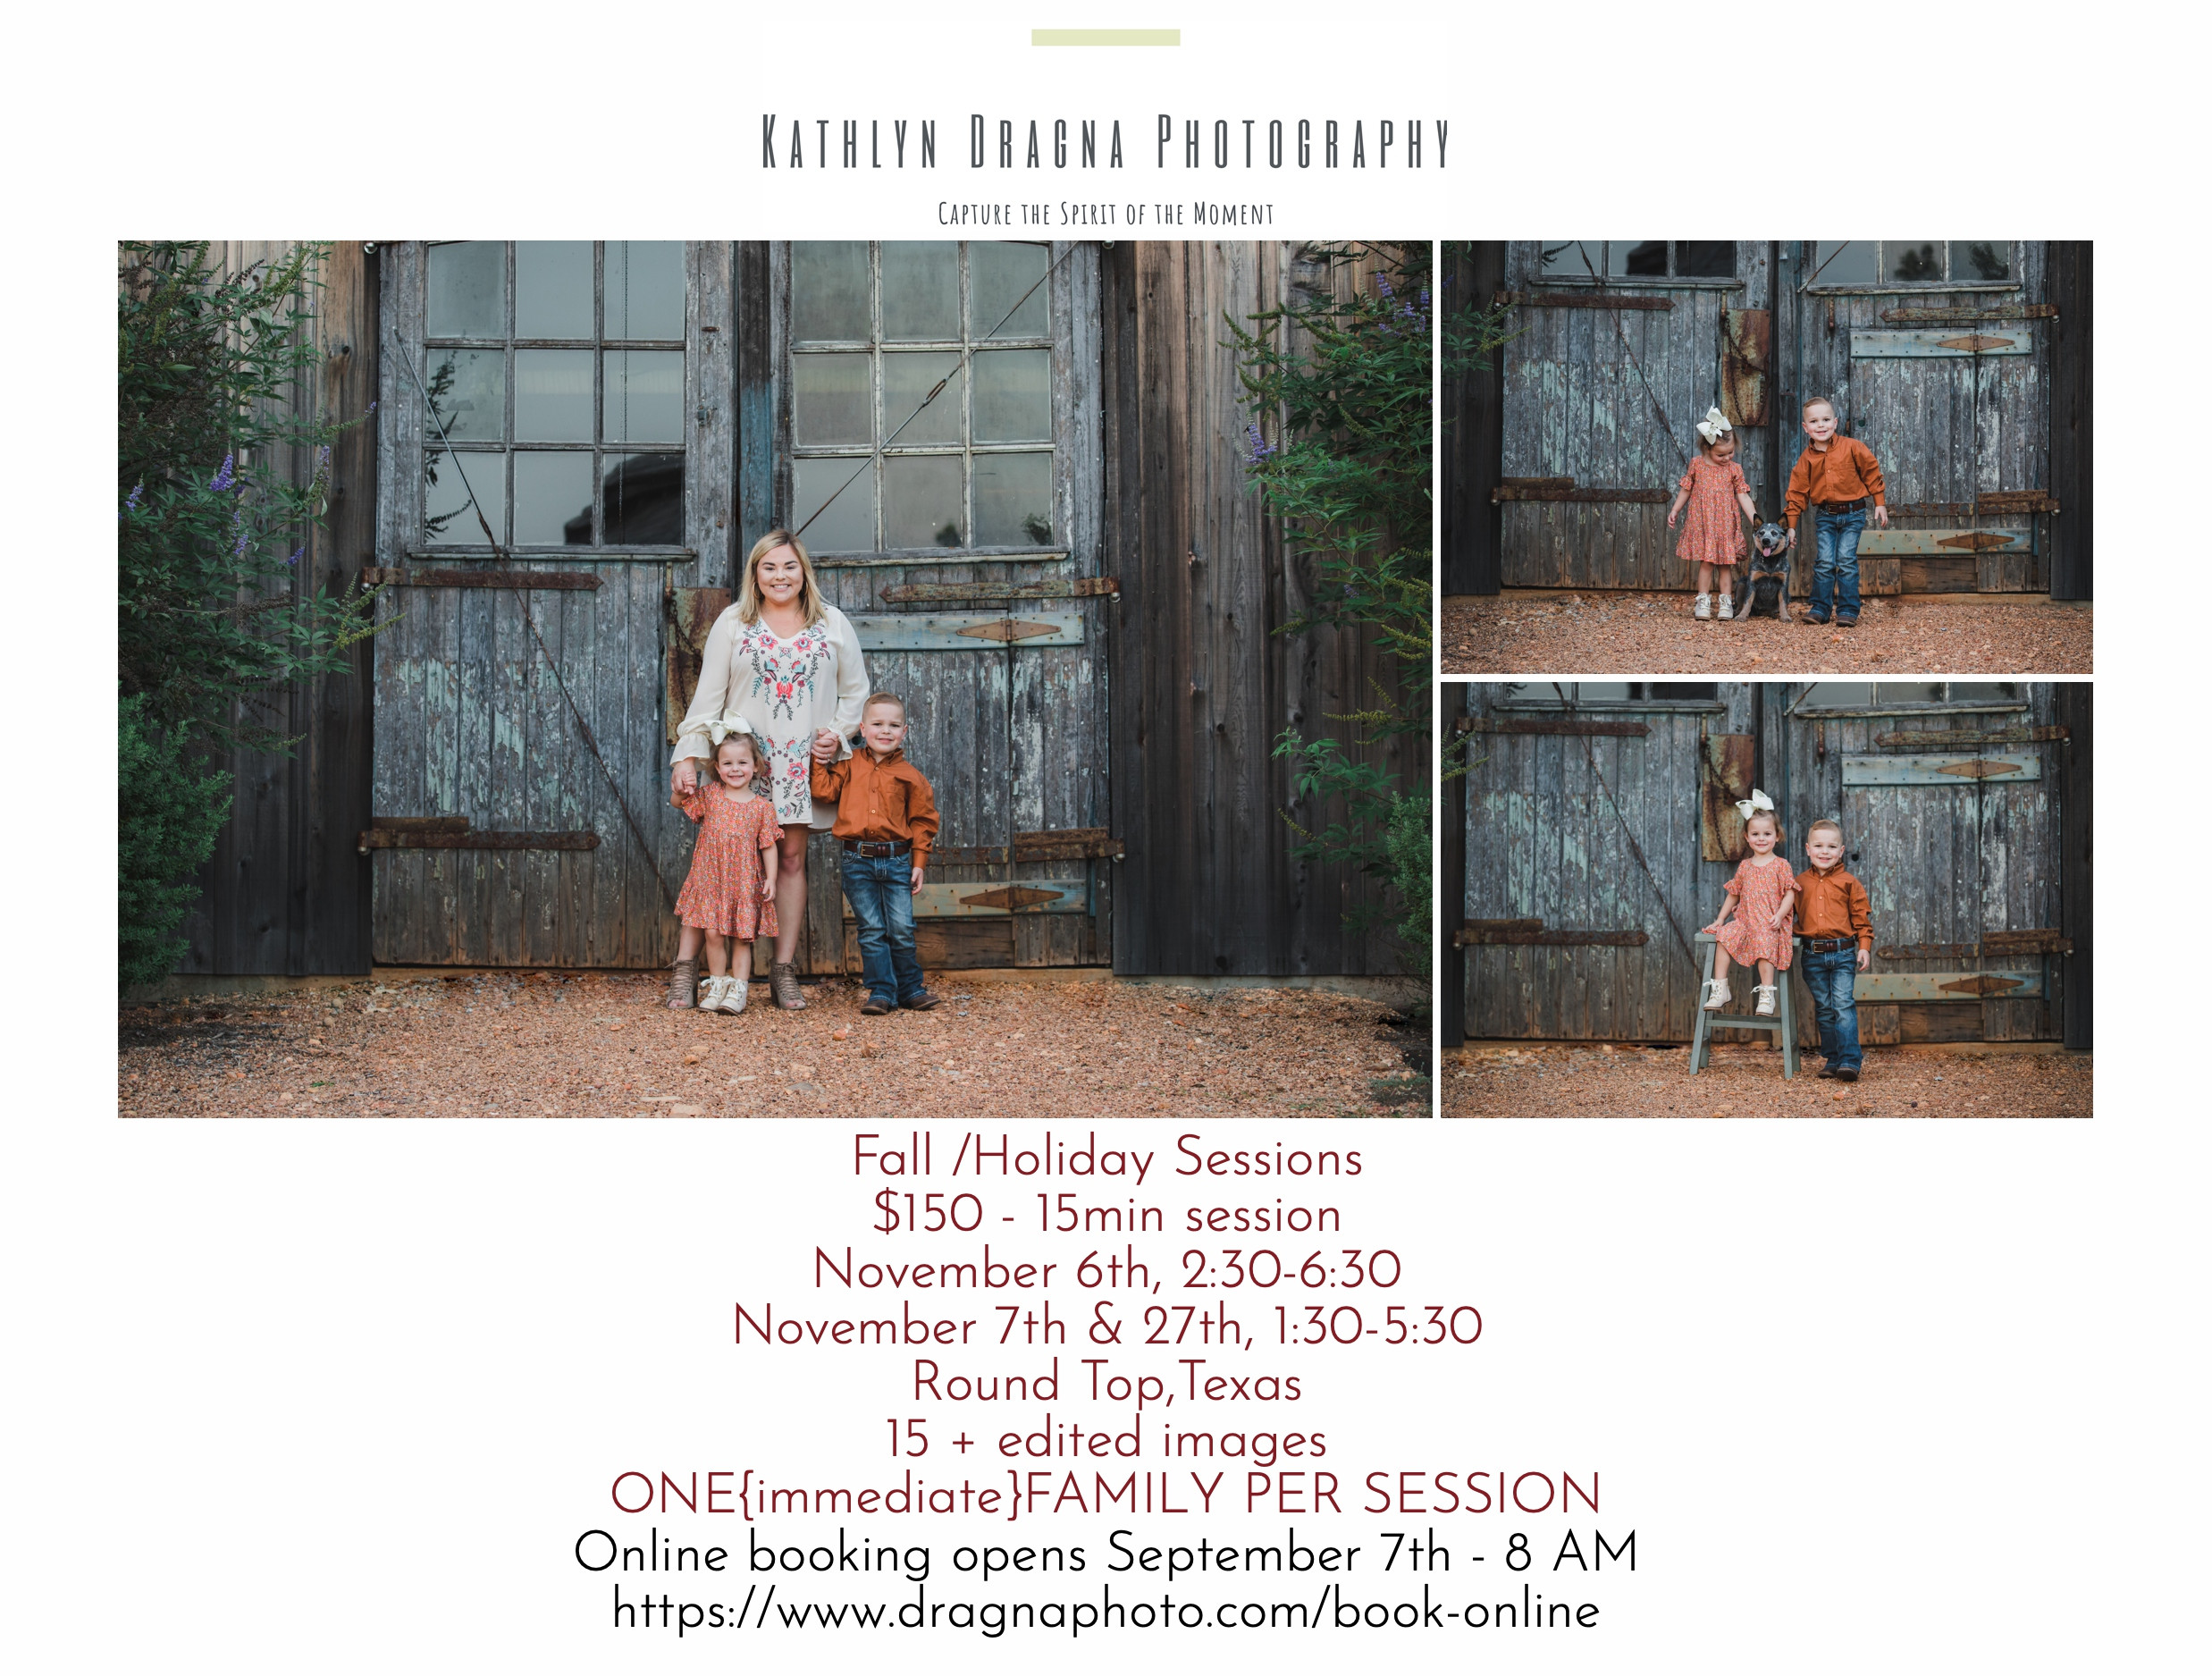 Fall/Holiday Family Sessions 2021